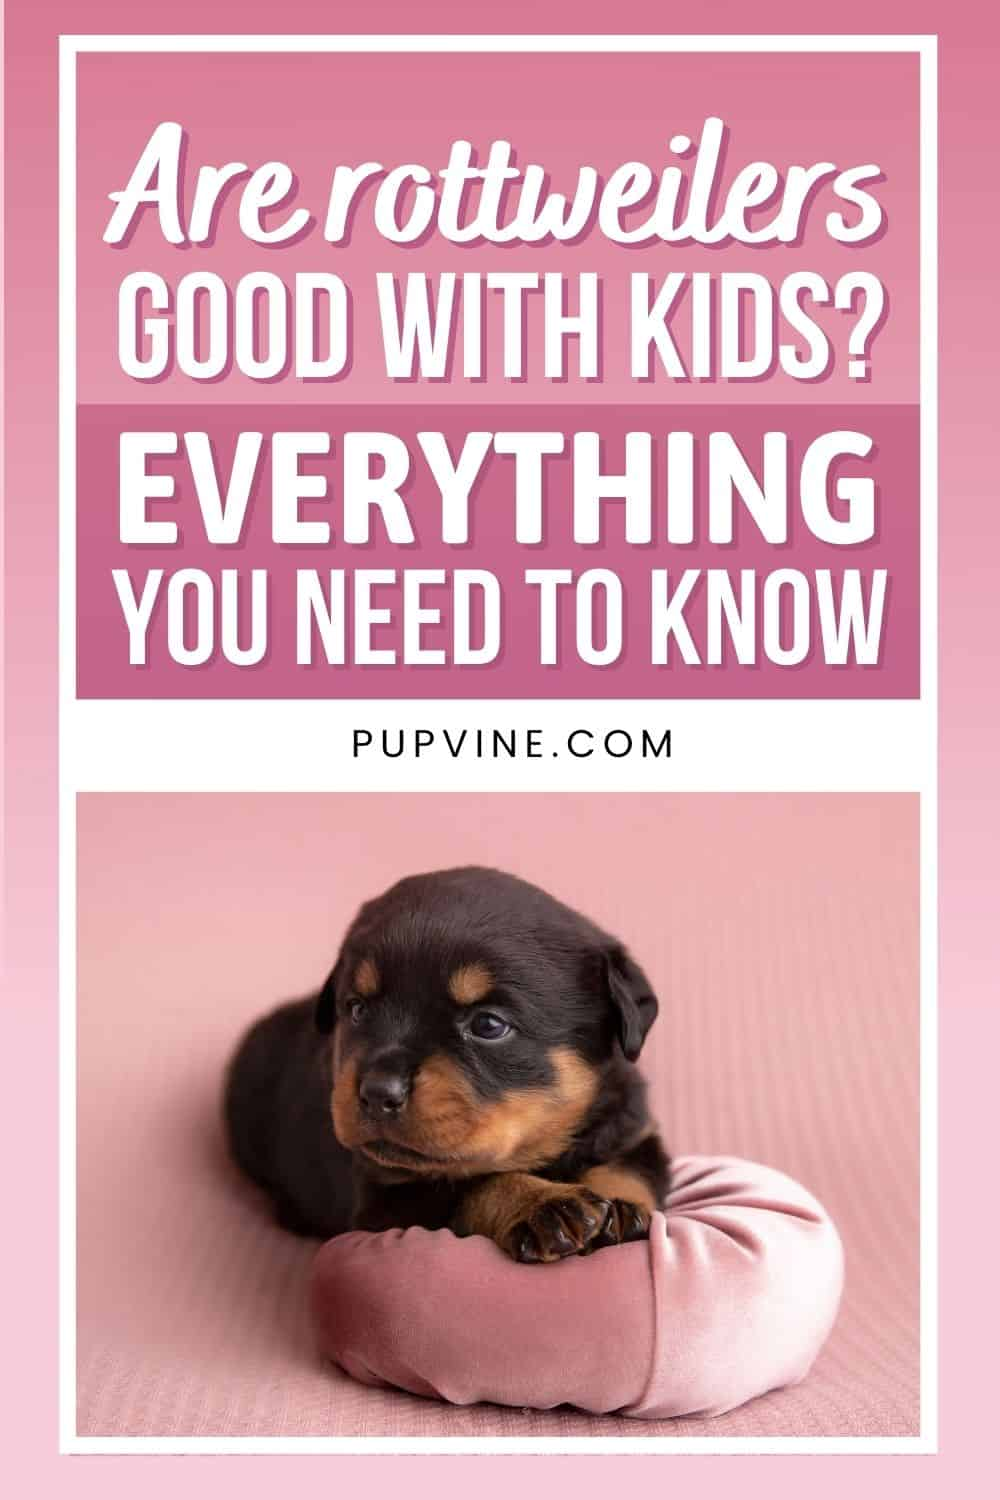 Are Rottweilers Dangerous? How Unsafe Are These Dogs, Really?